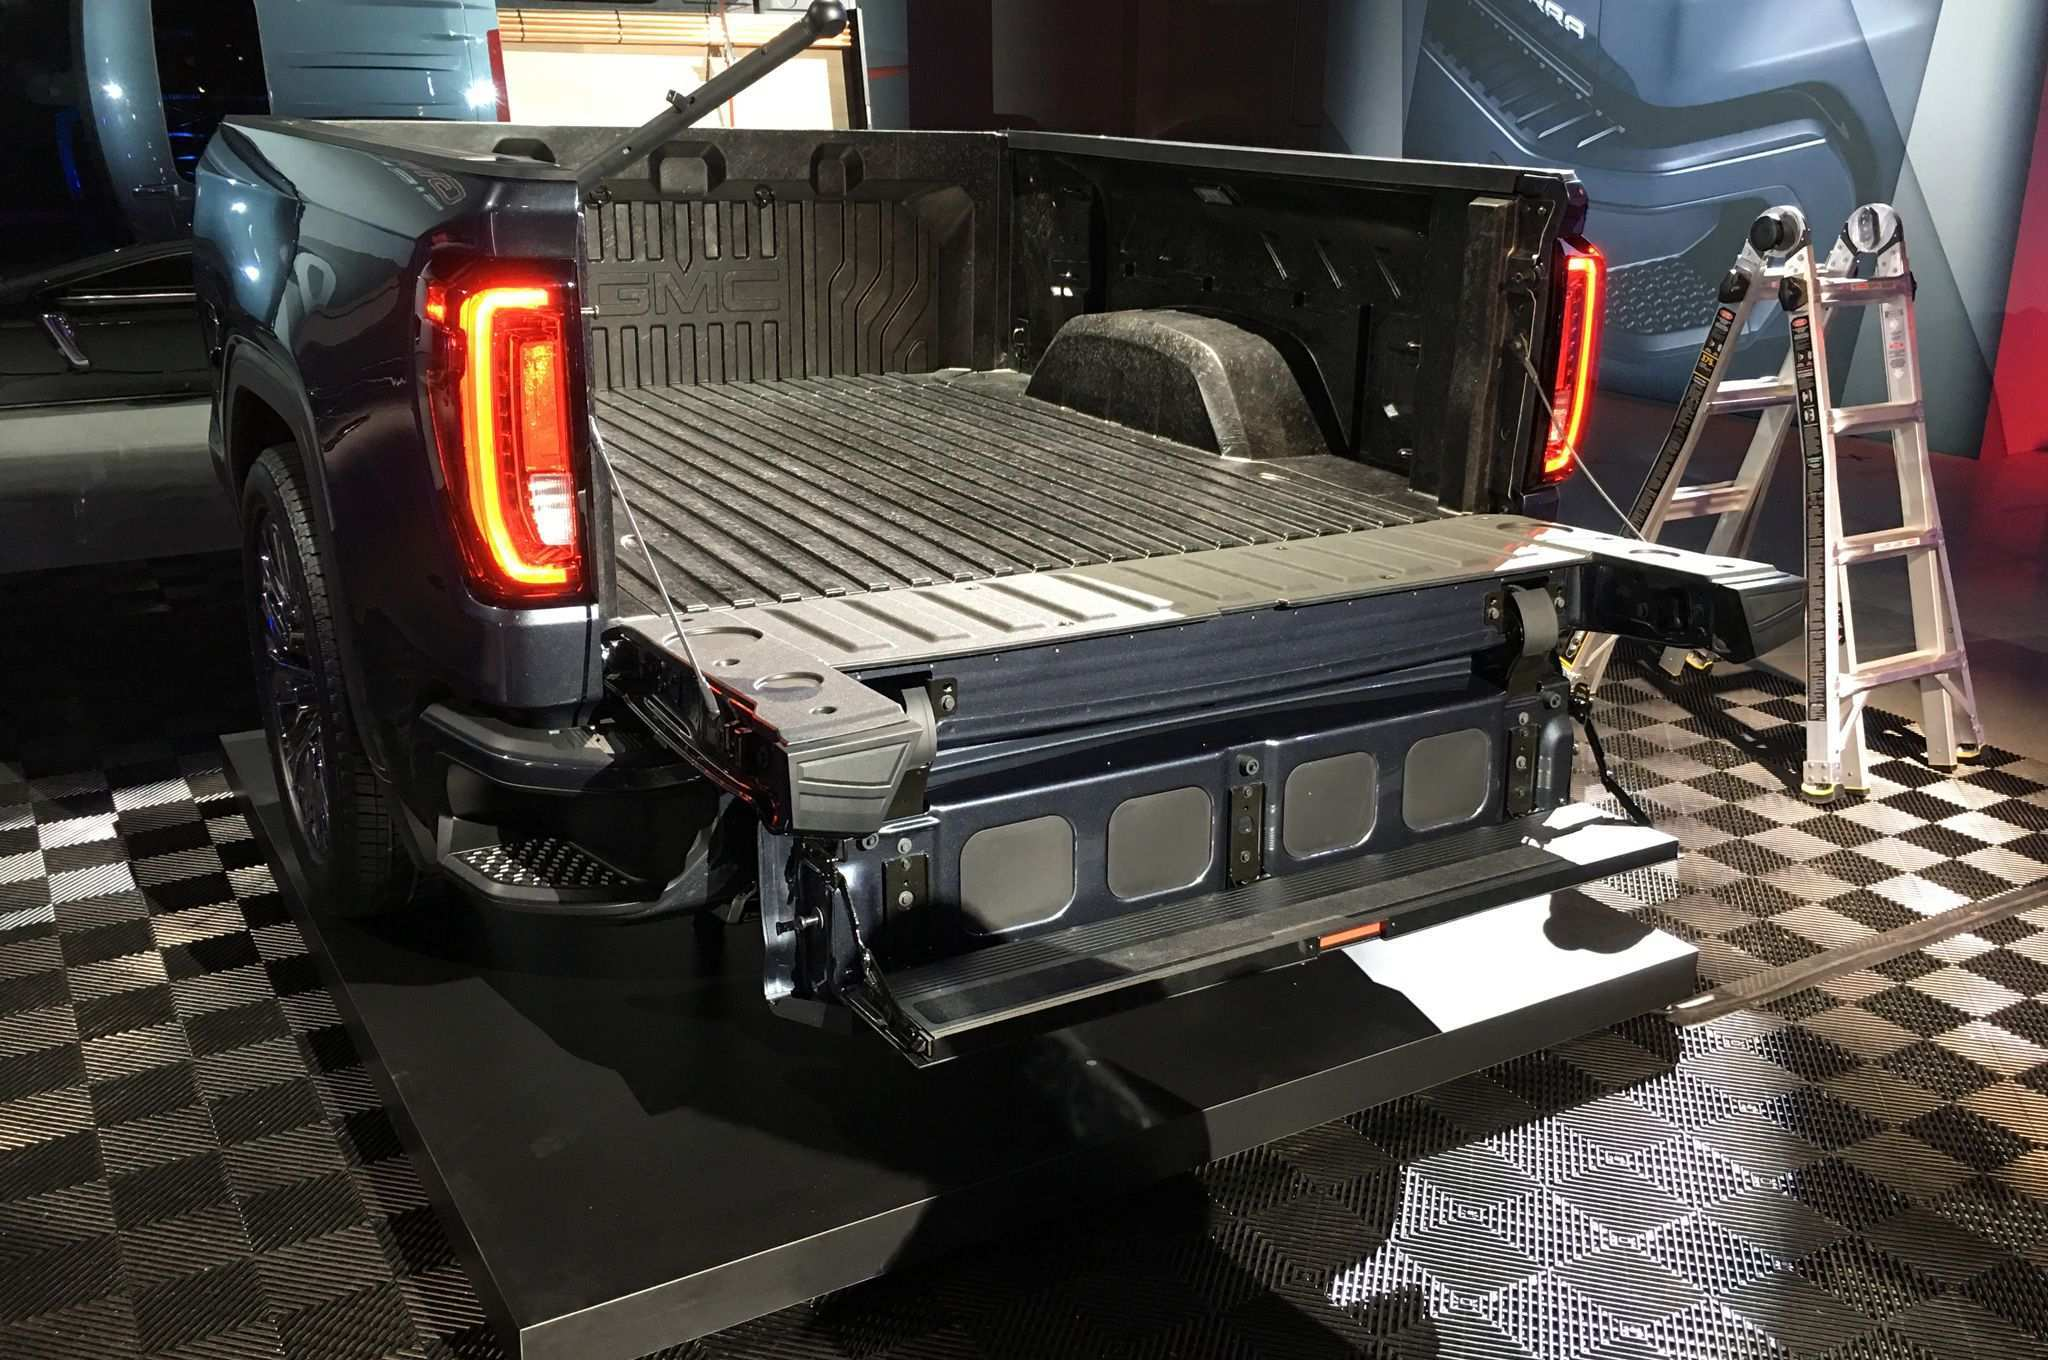 44 New 2019 Gmc Pickup Tailgate Research New by 2019 Gmc Pickup Tailgate